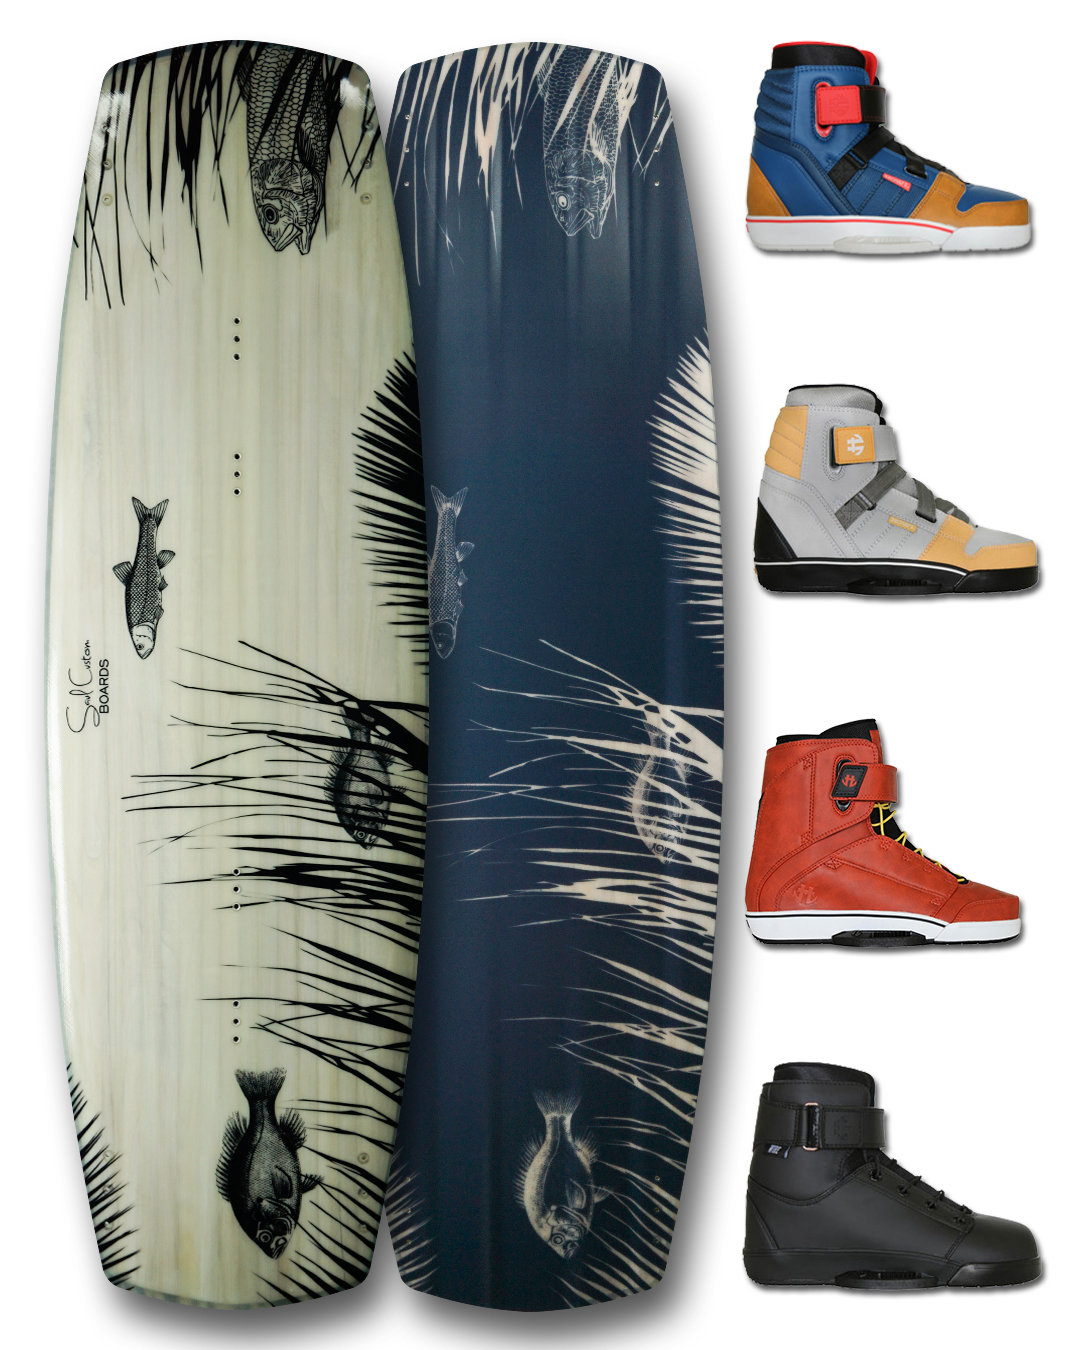 Wakeboard PRO or Crossover with custom graphics and Humanoid Boots 00011